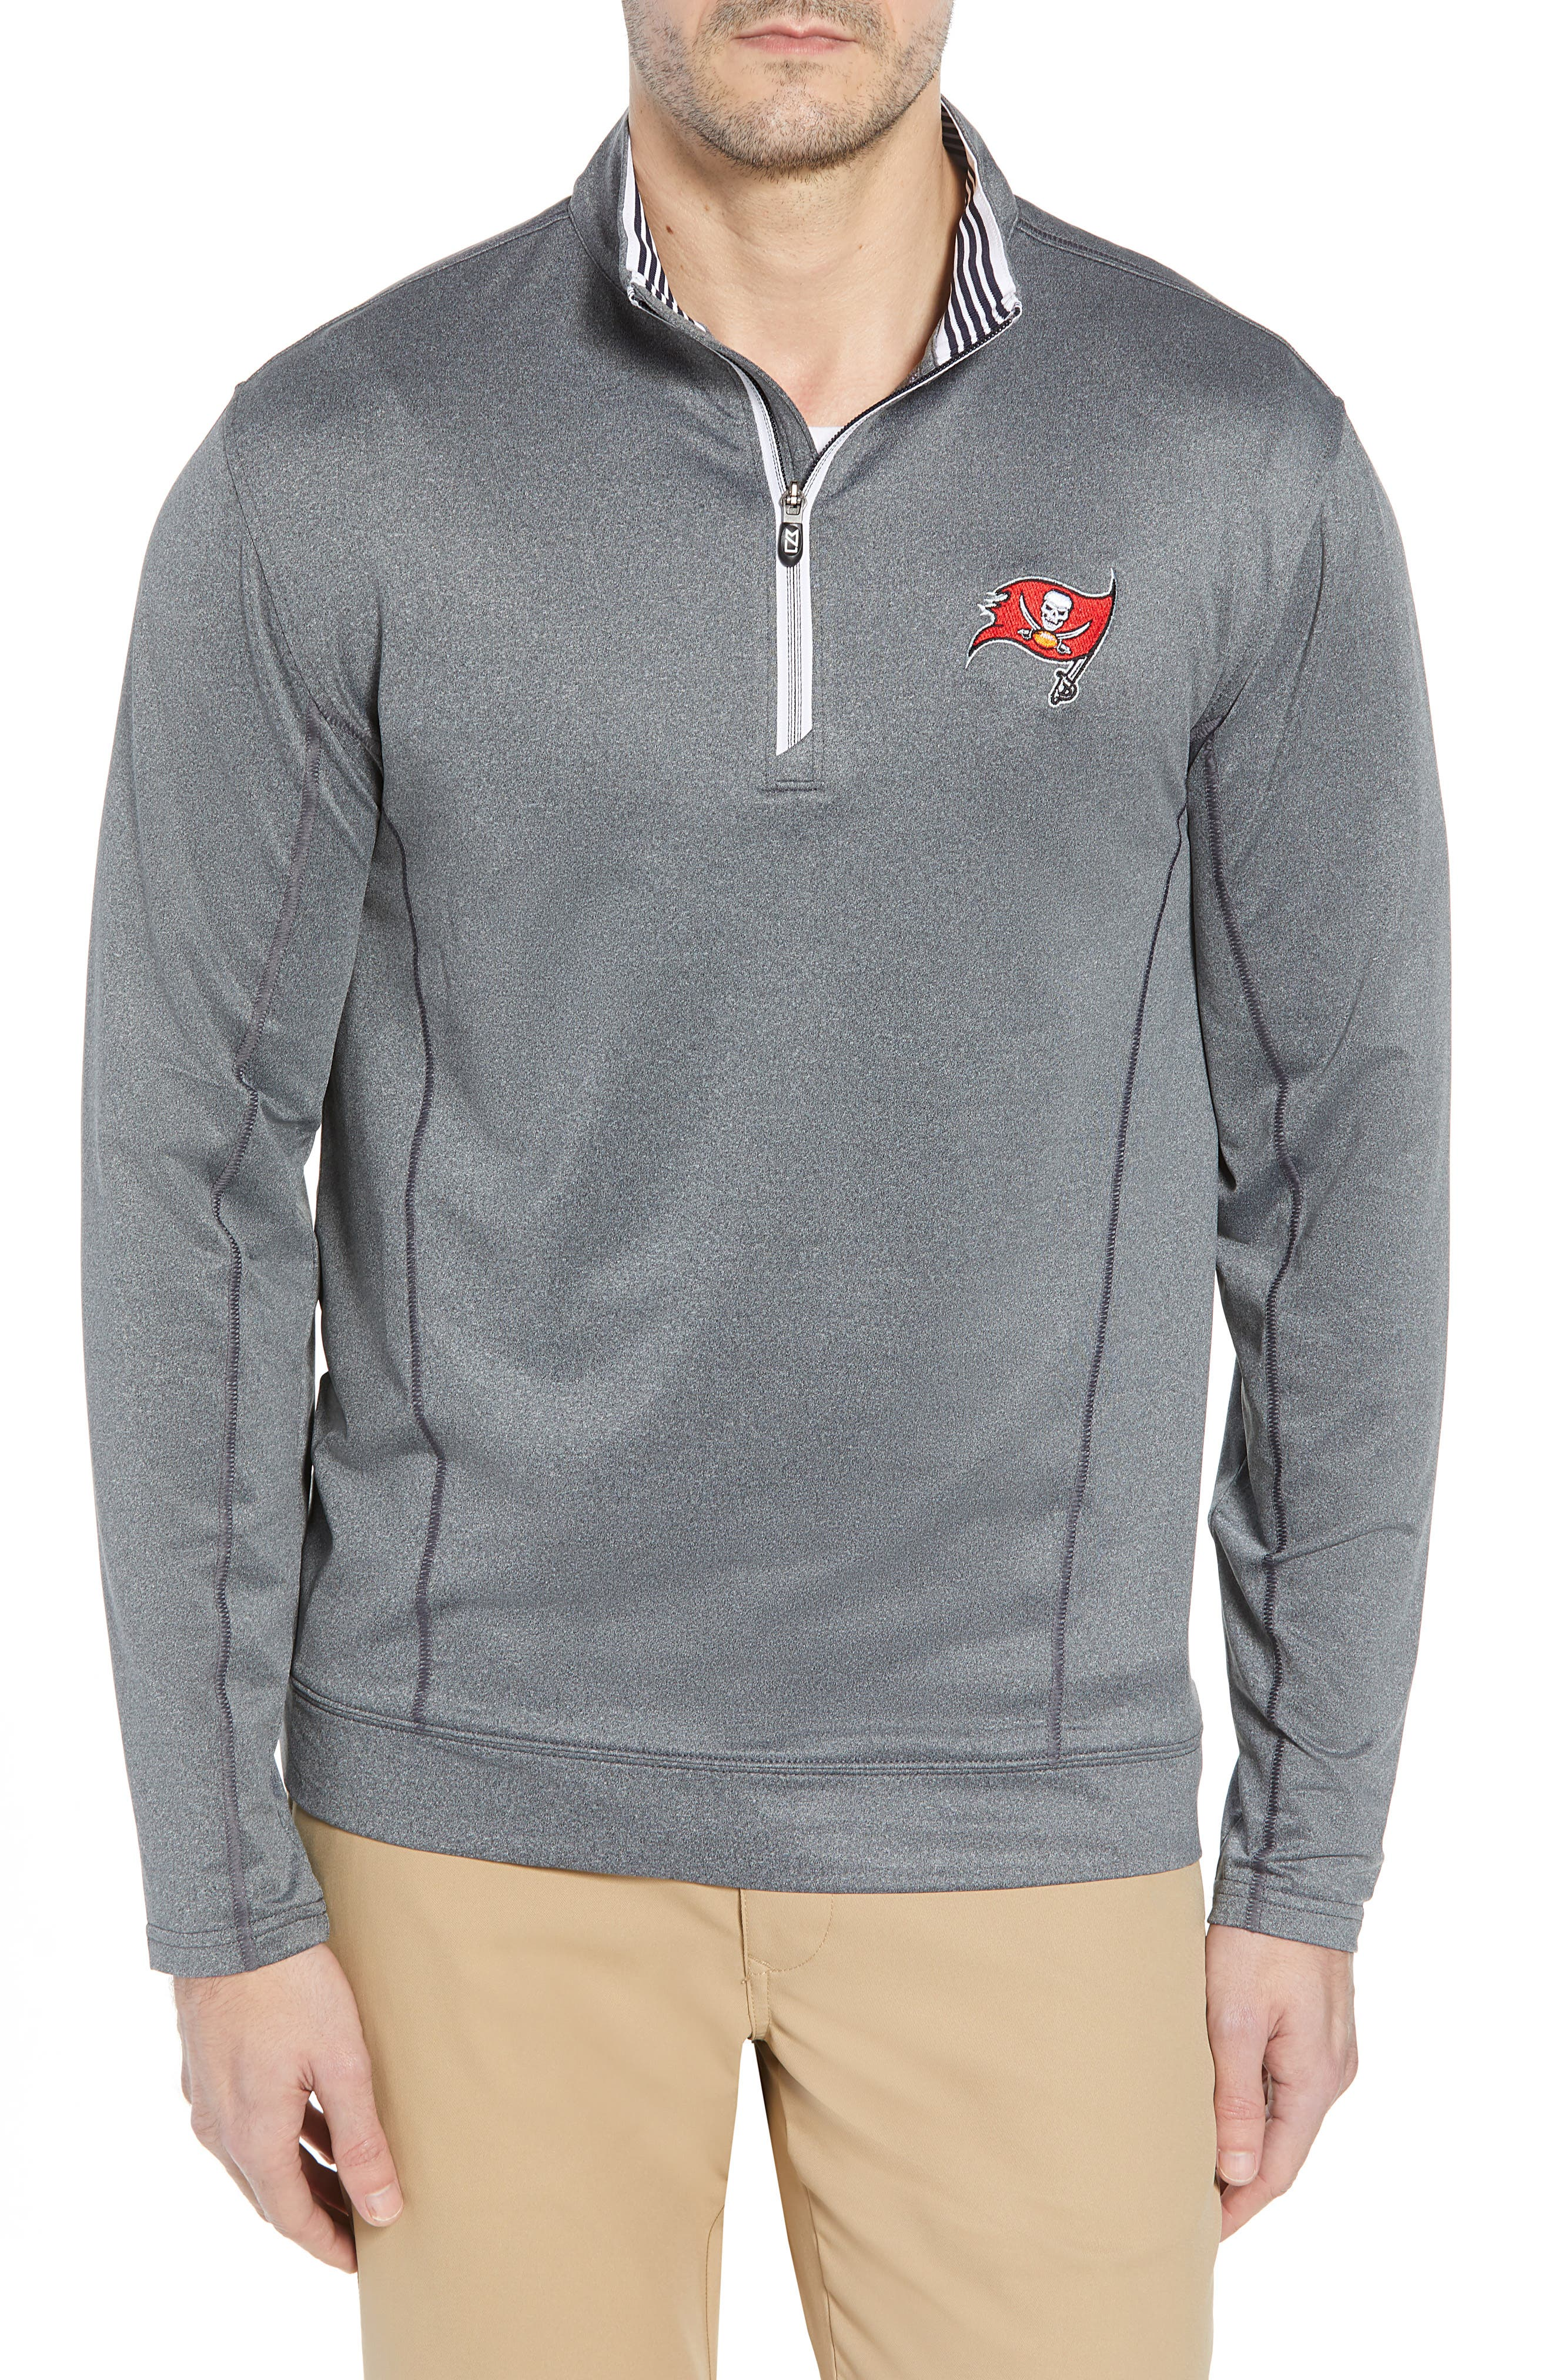 Endurance Tampa Bay Buccaneers Regular Fit Pullover,                             Main thumbnail 1, color,                             CHARCOAL HEATHER